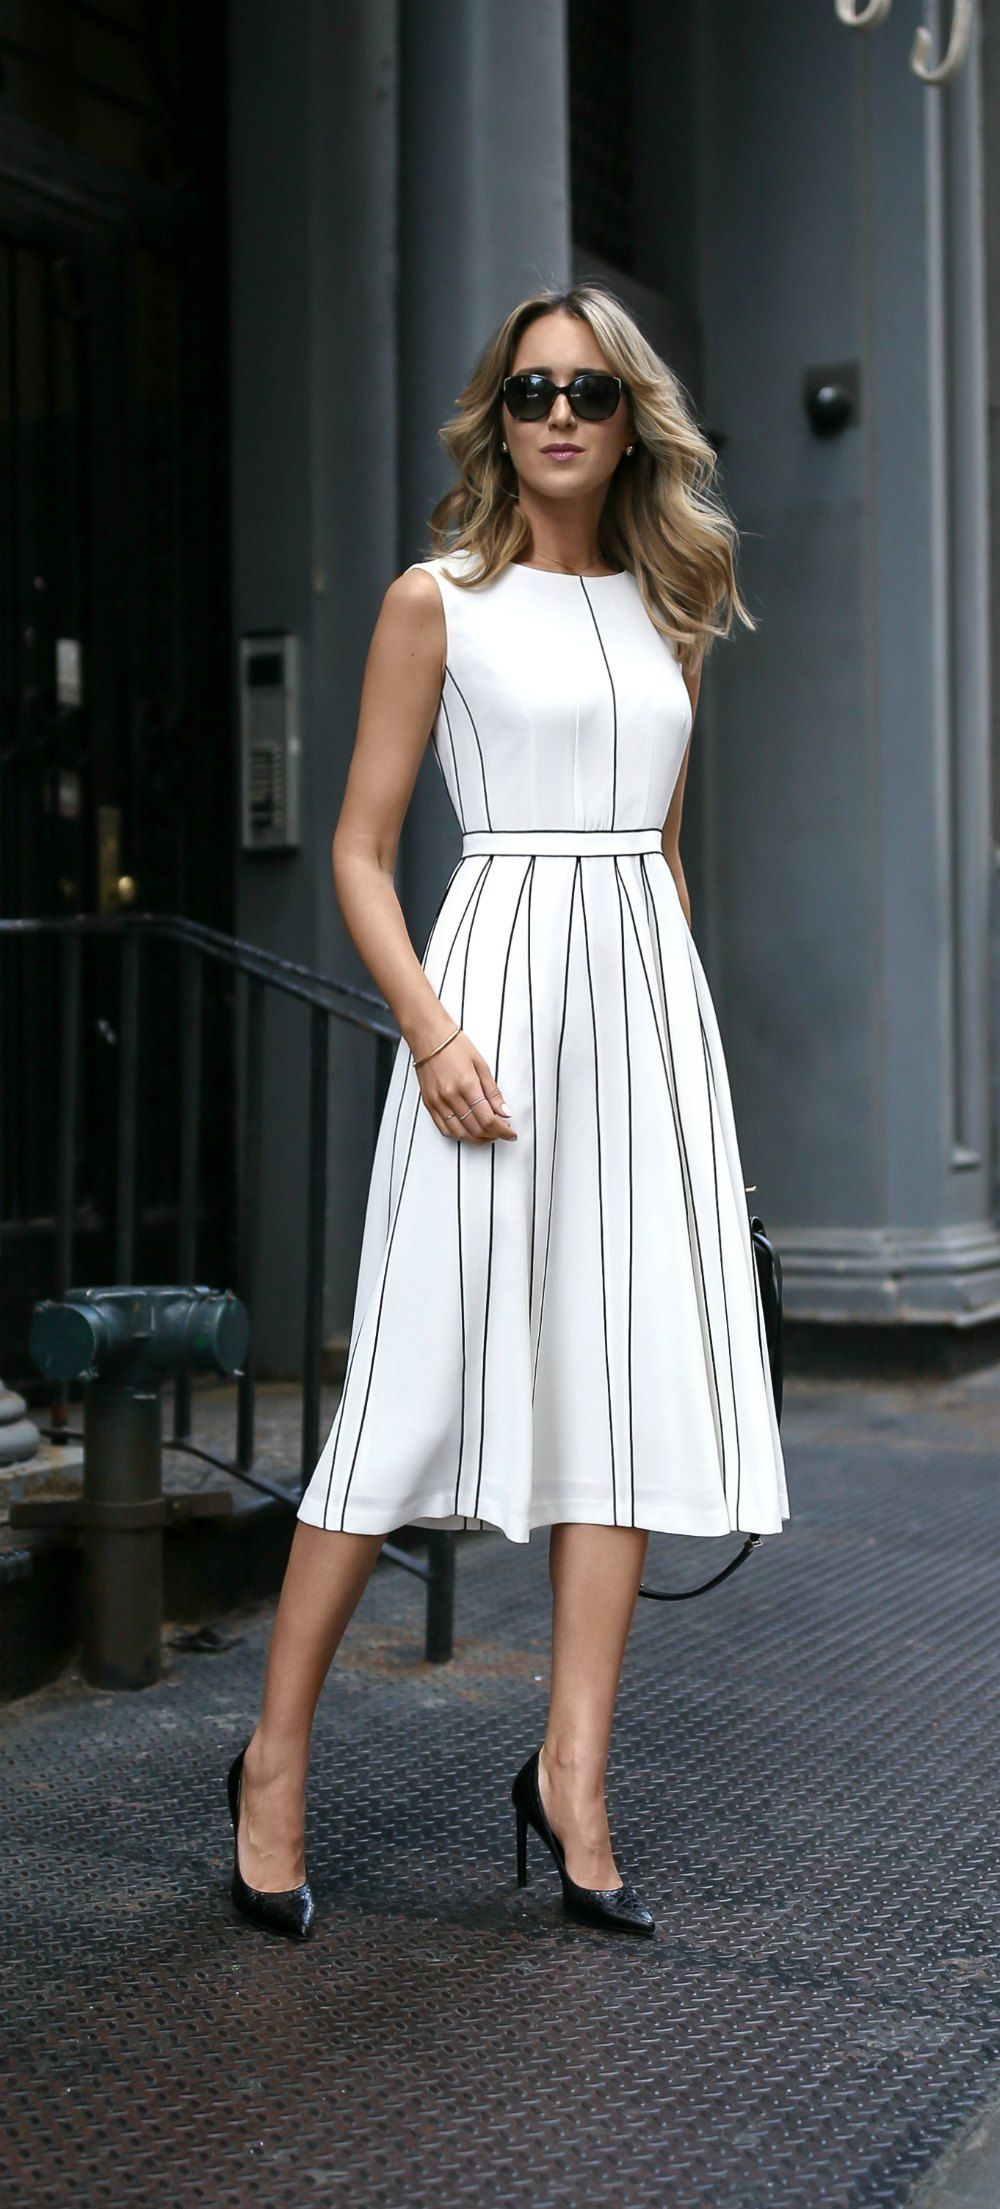 White Pleated Sleeveless A Line Midi Dress With Black